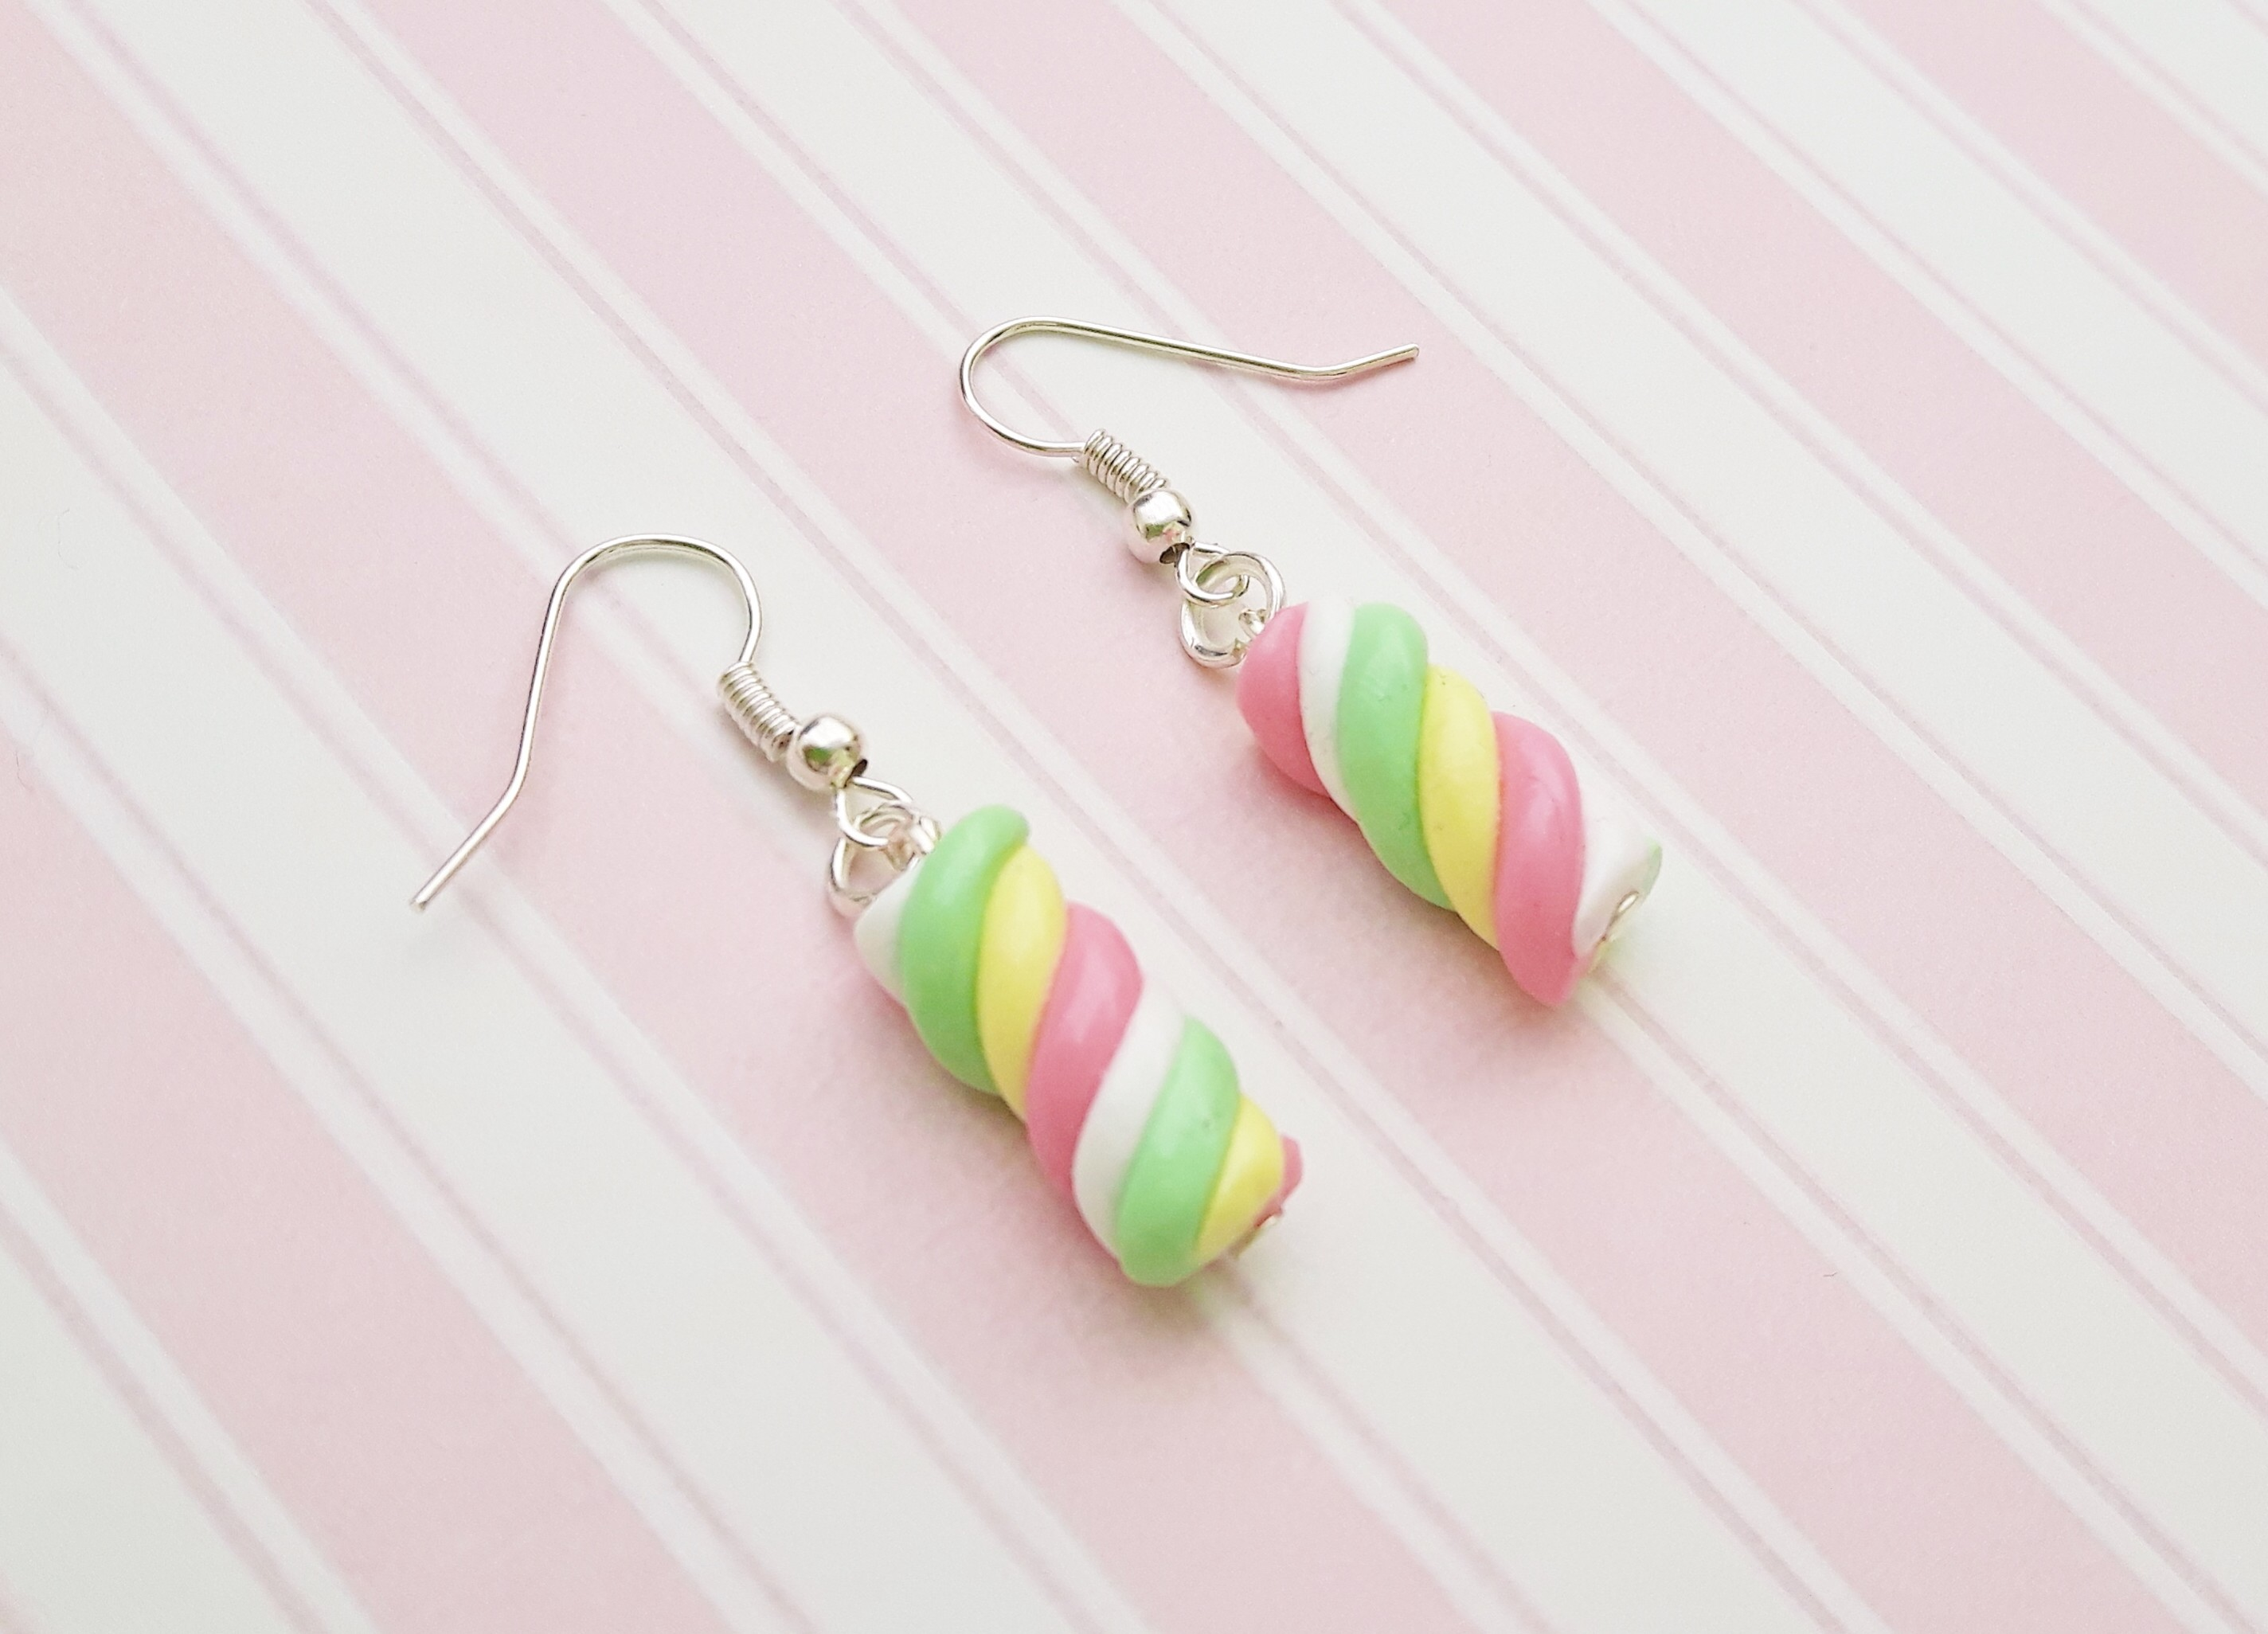 Handmade, cute, sweet, candy, pick 'n' mix, novelty, kitsch, kawaii, jewellery, accessories, gifts, fashion, made from, Fimo, polymer clay, silver, plated, nickel free, in uk, marshmallow, flump, earrings,